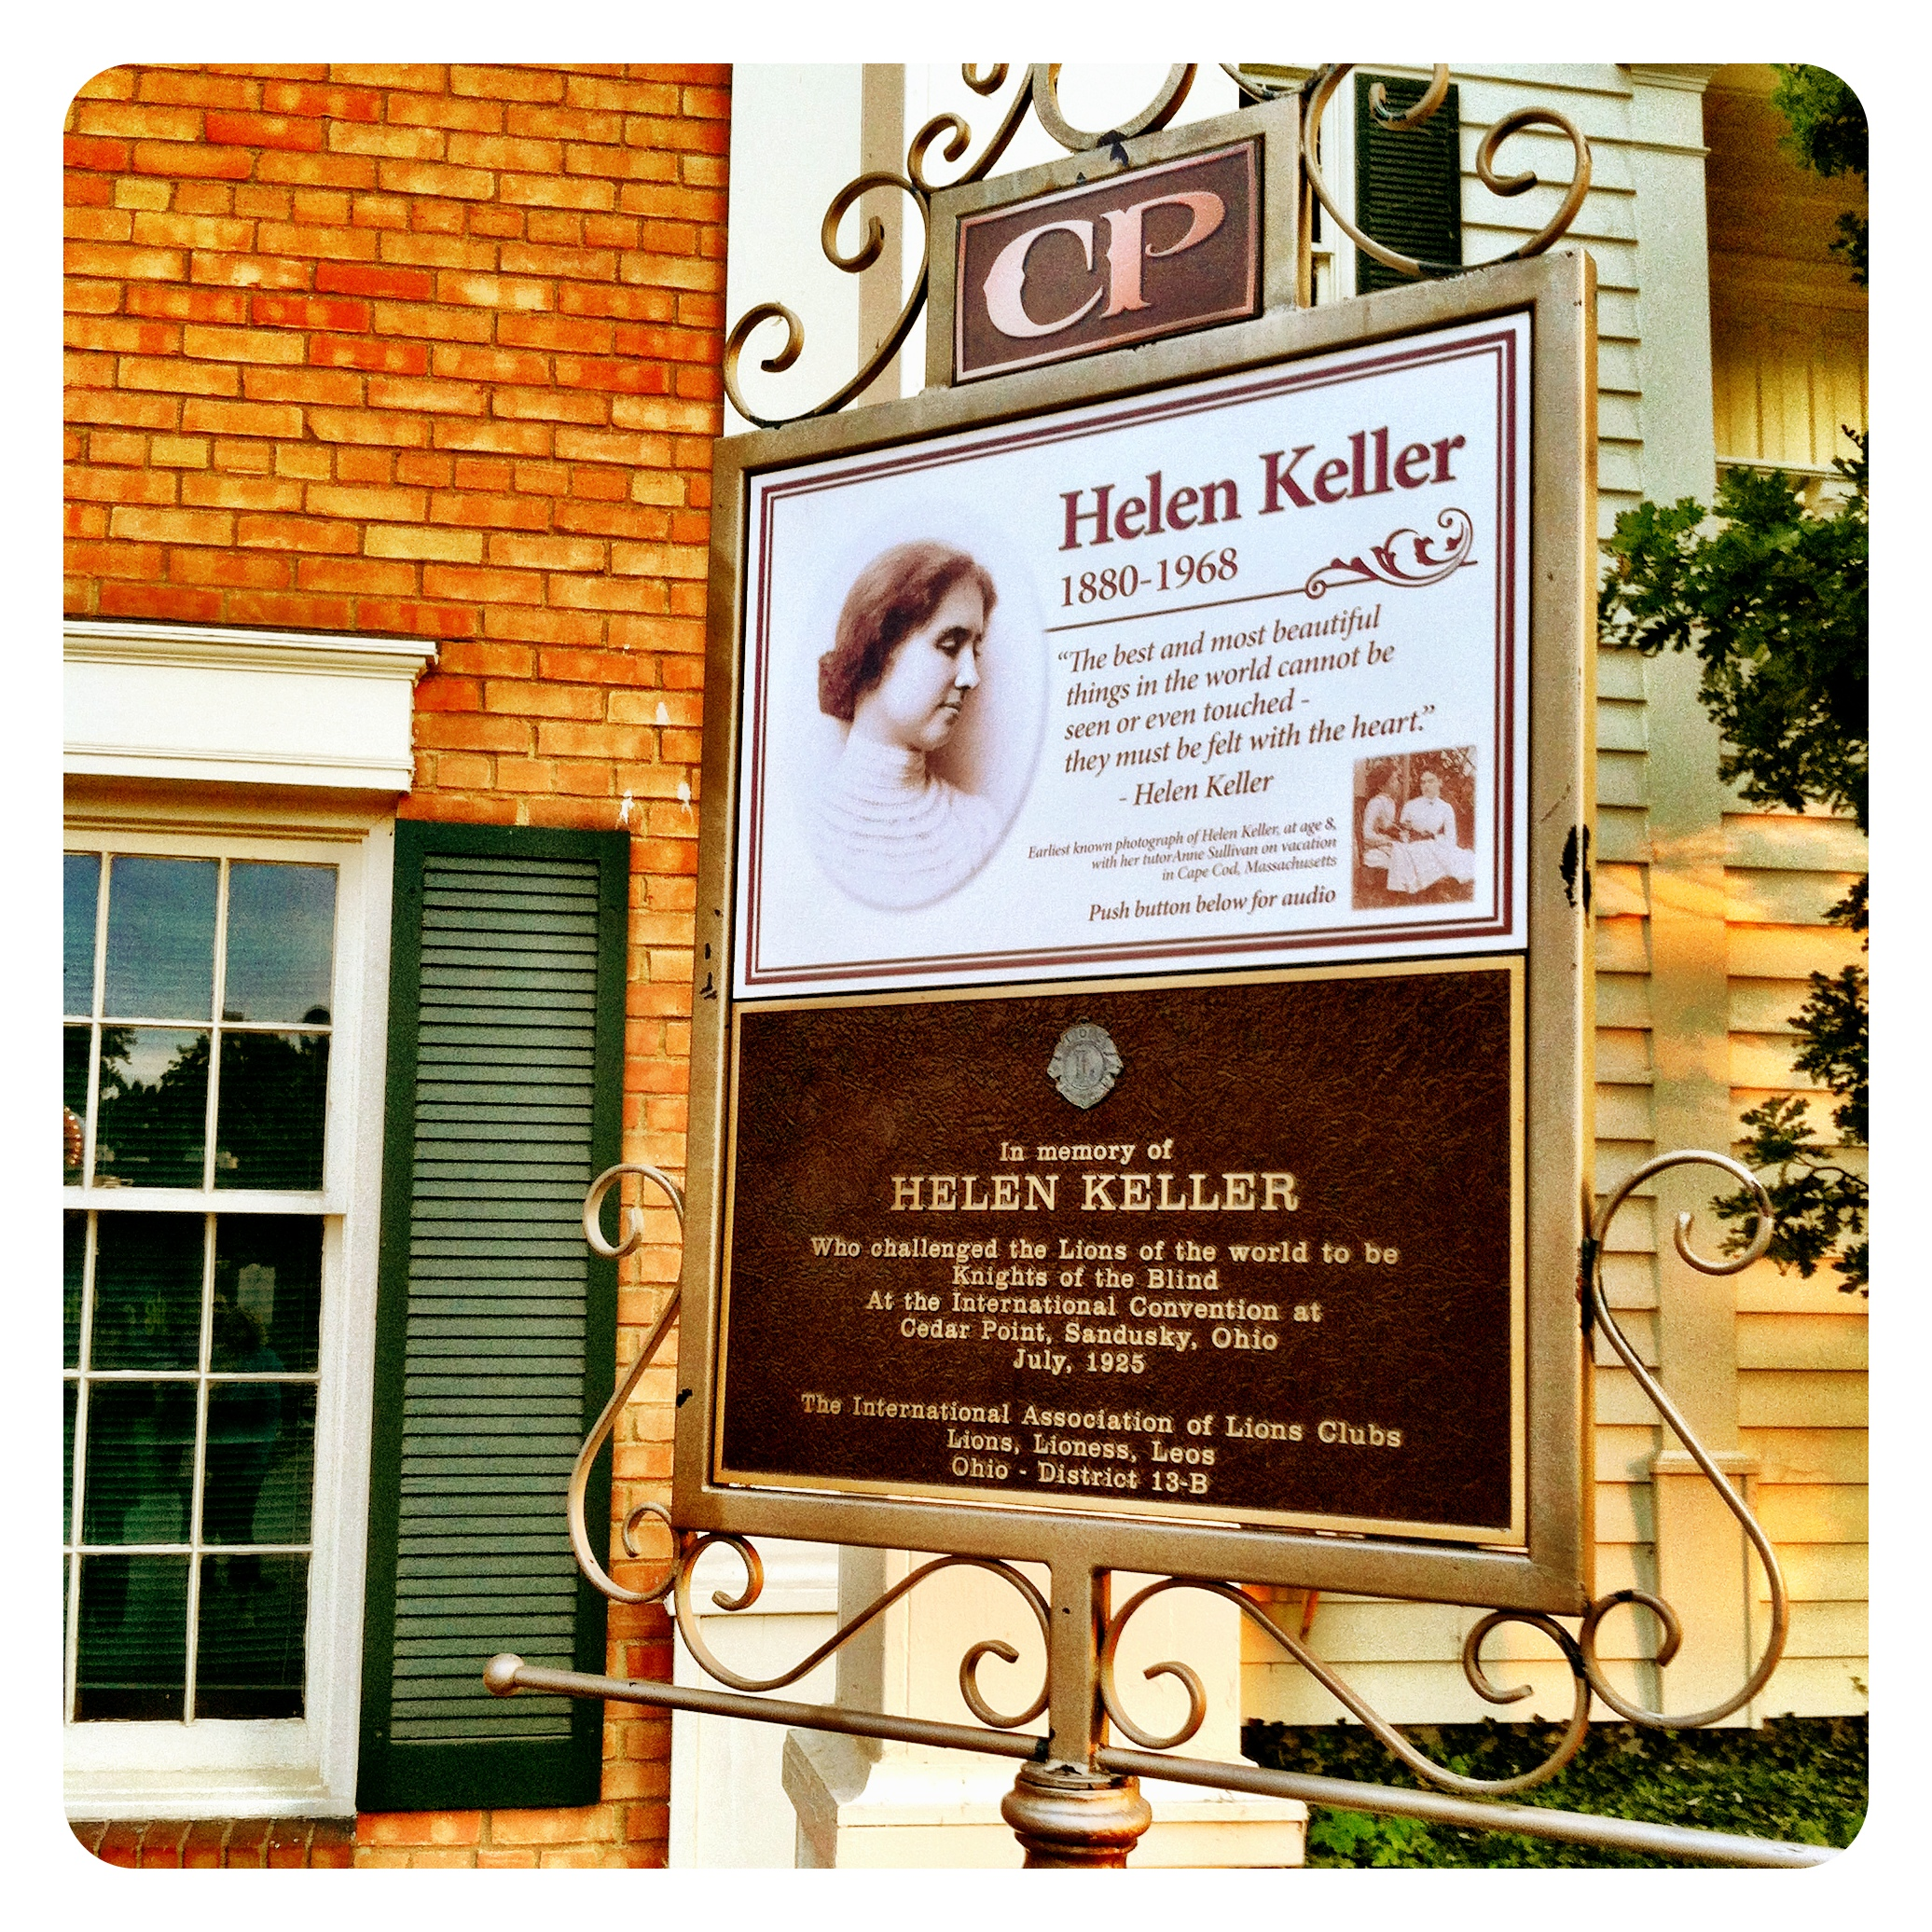 Helen Keller Cedar Point Sandusky Ohio is more than just for Bloggers|Sharon the Moments blog